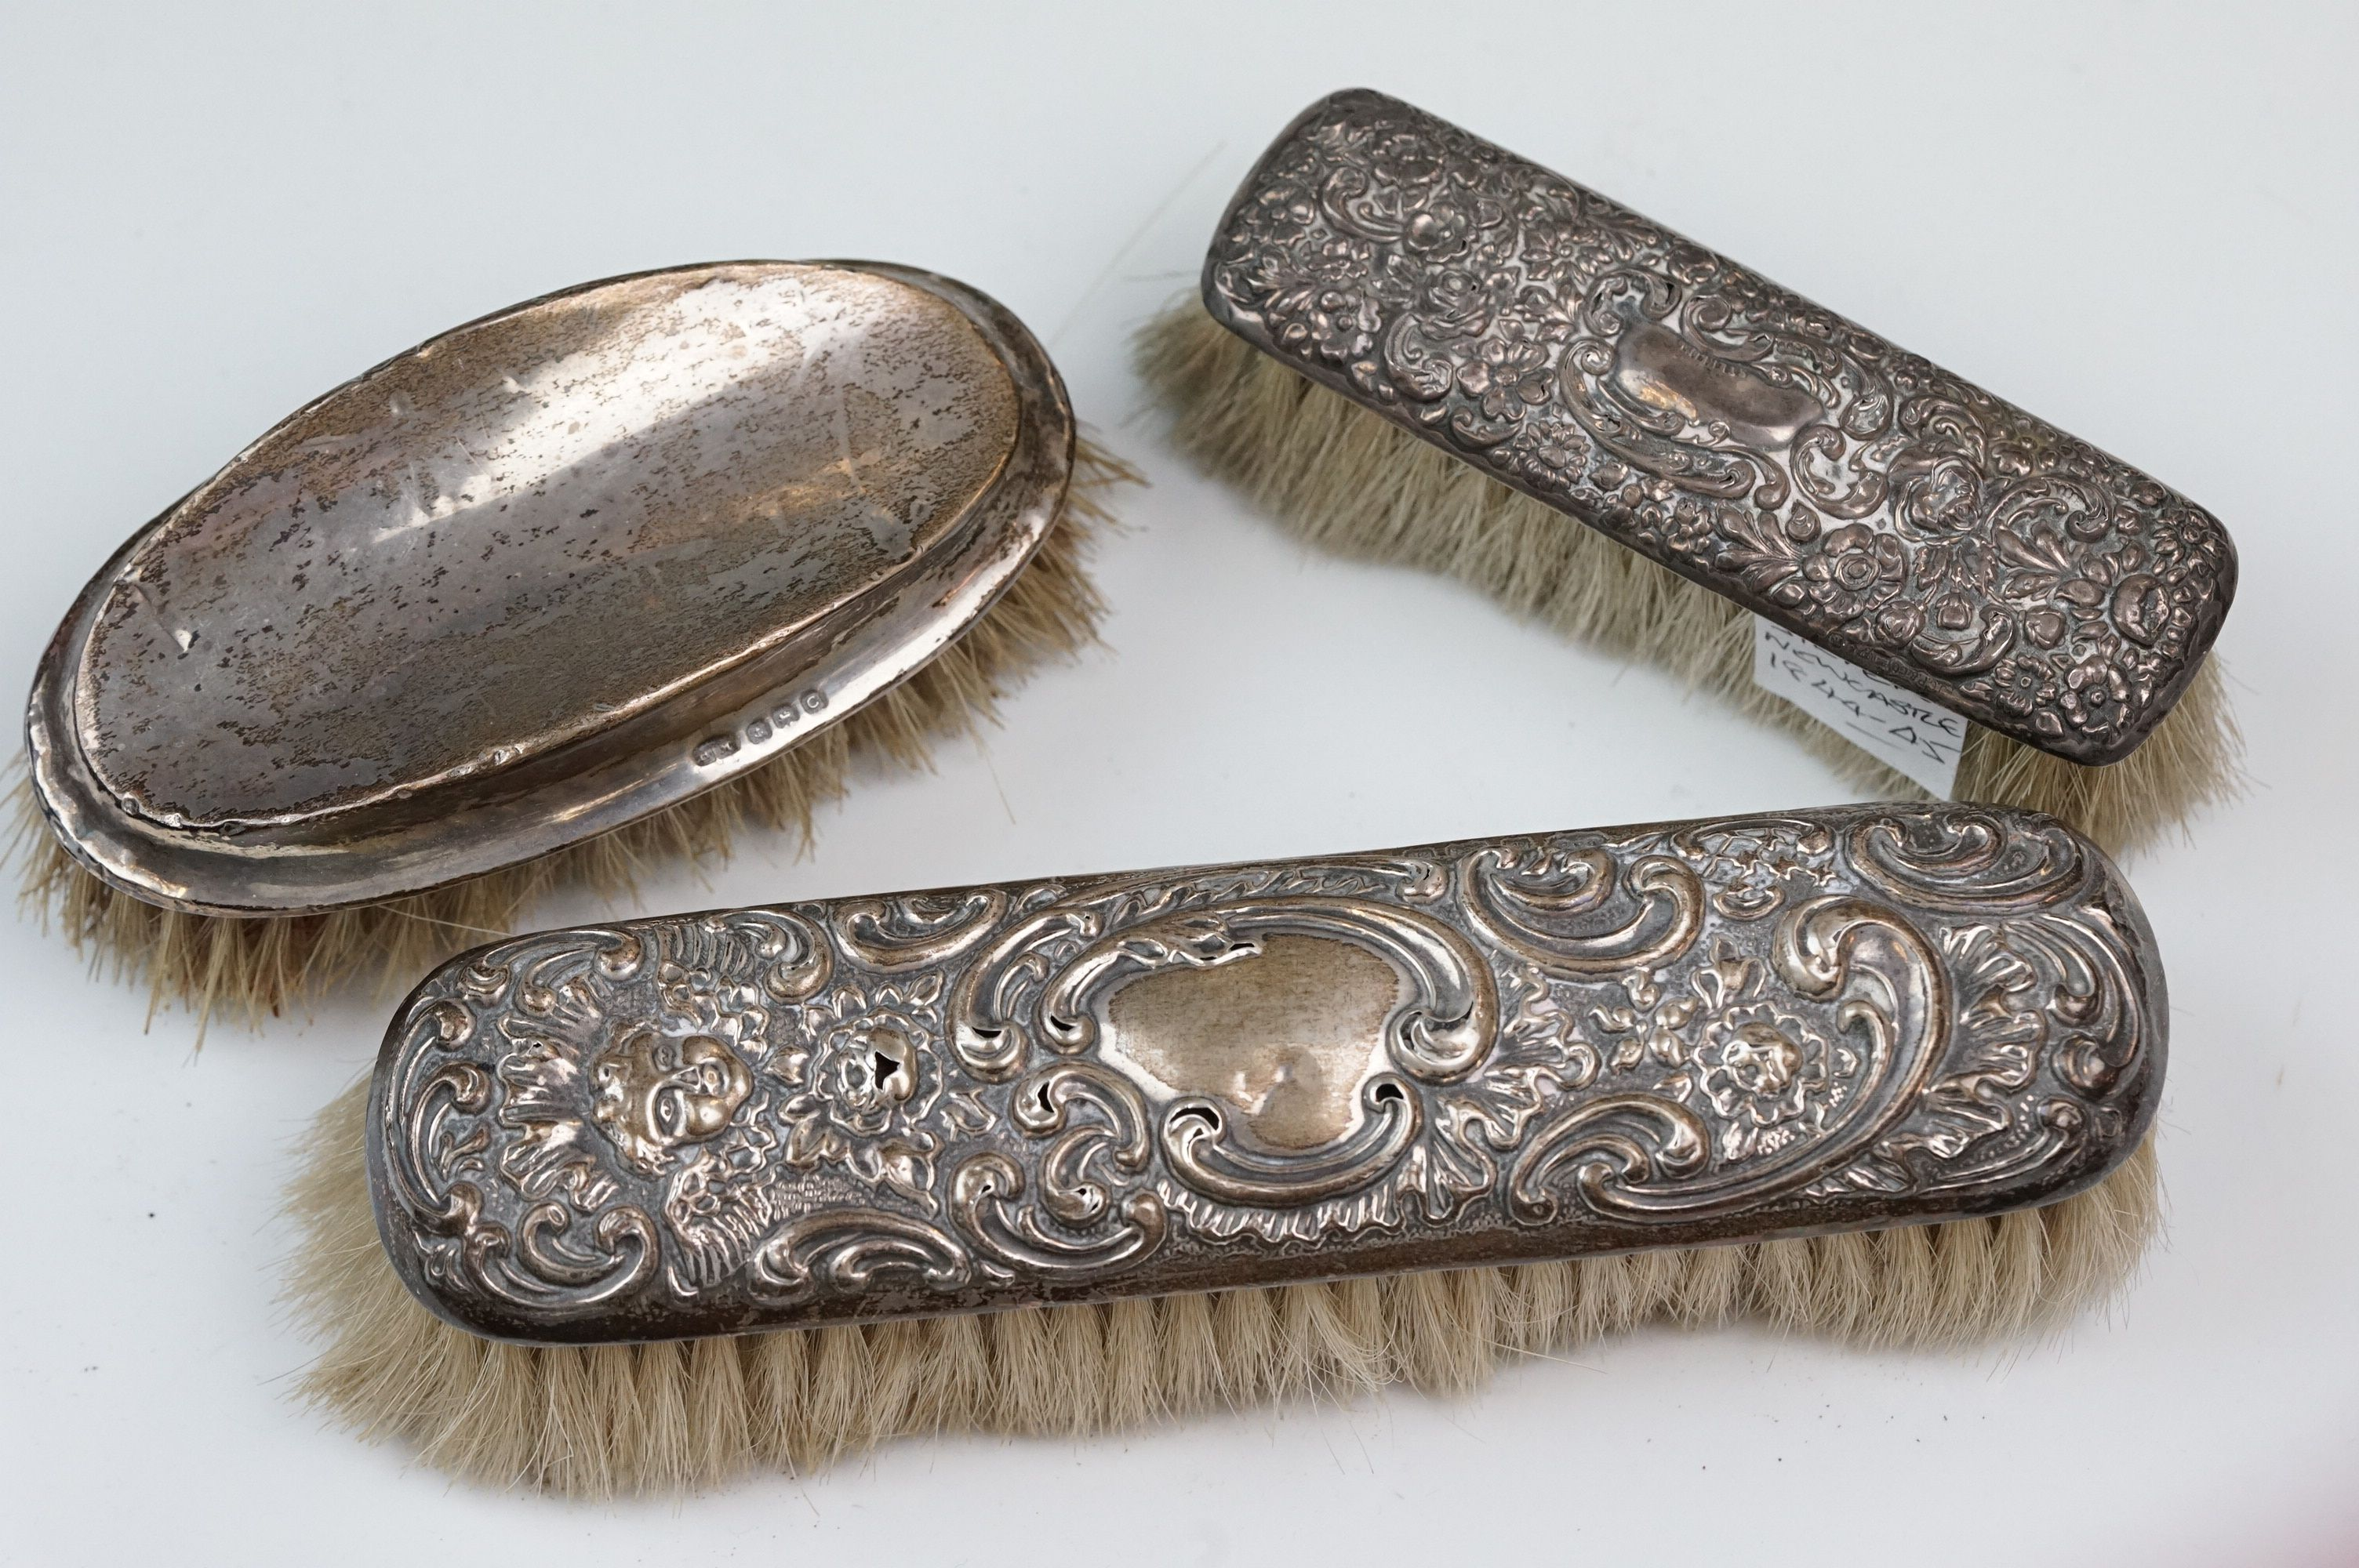 Silver topped dressing table items to include hand mirrors, brushes, jars, button hook and shoe - Image 6 of 12